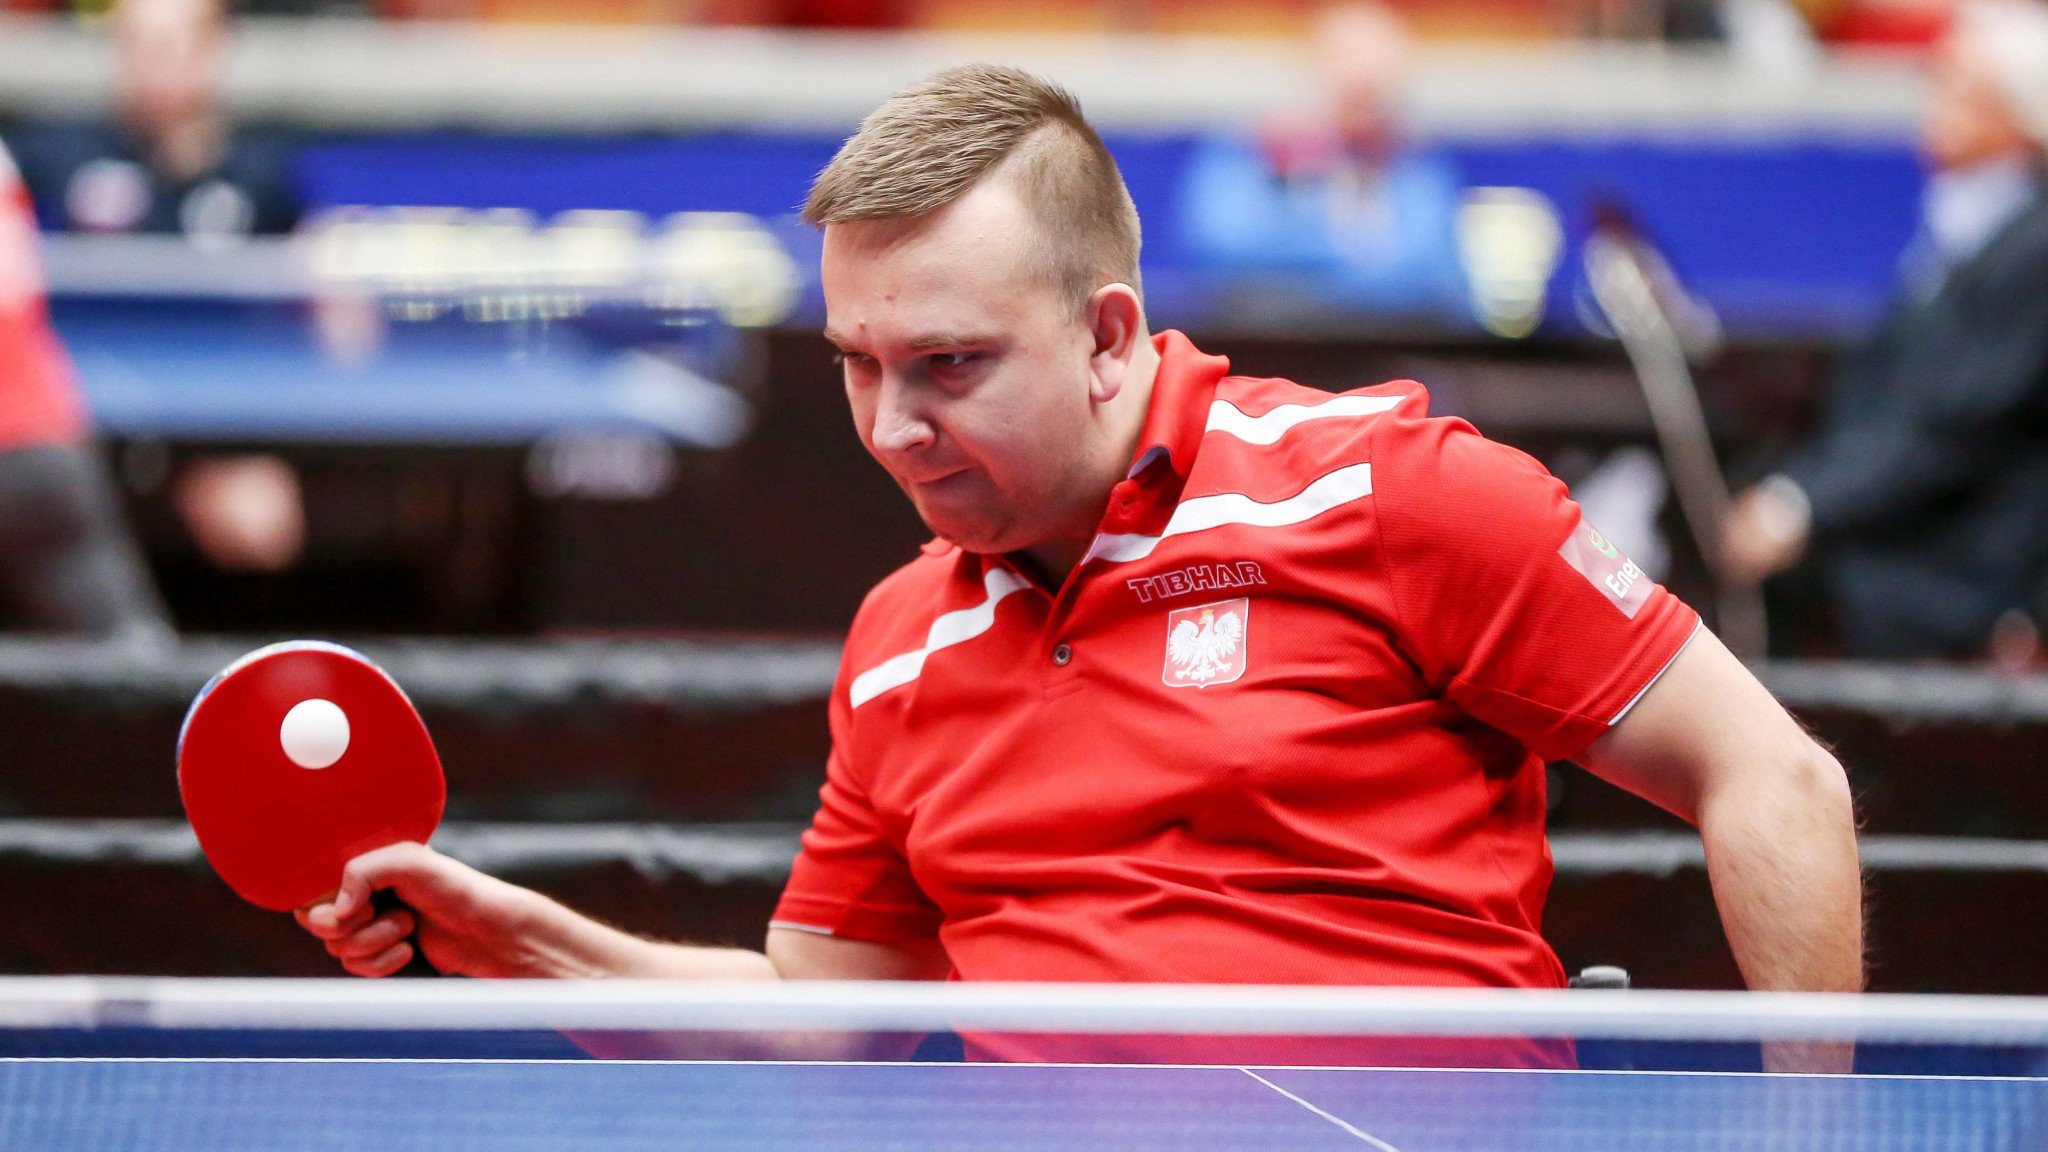 Poland's Rafal Czuper, who with Tomasz Jakimczuk had earlier defeated the Russian second seeds in the class 2 team event at the Para European Table Tennis Championships in Sweden, went out at the semi-final stage today ©ITTF